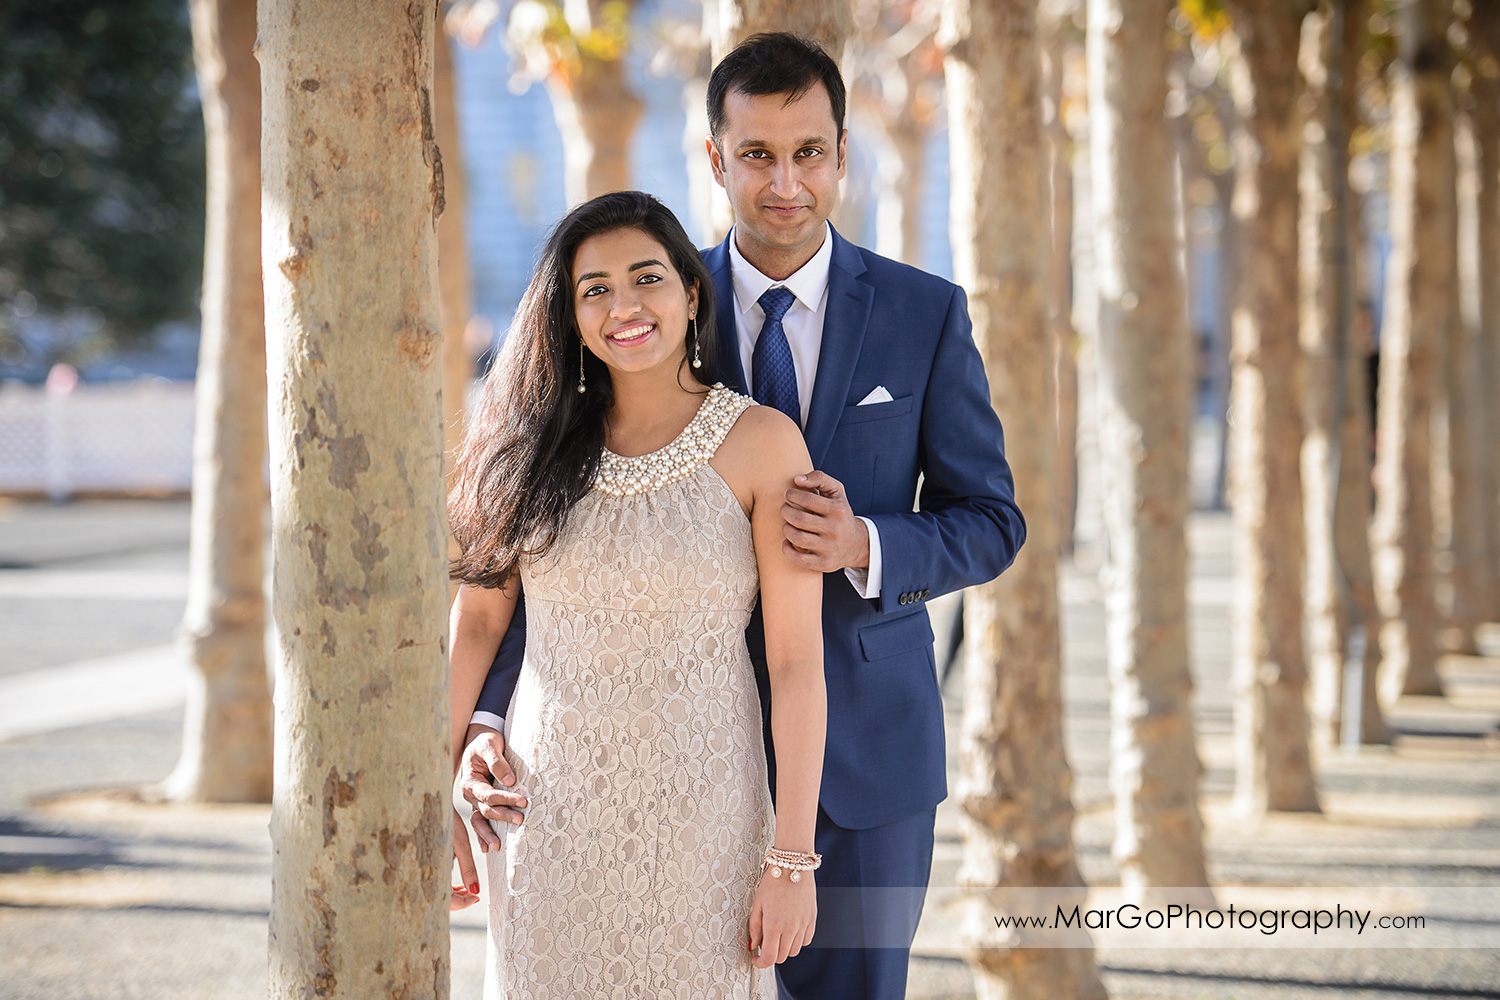 3/4 portrait of woman in beige dress and man in navy blue suit between the trees in front of San Francisco City Hall